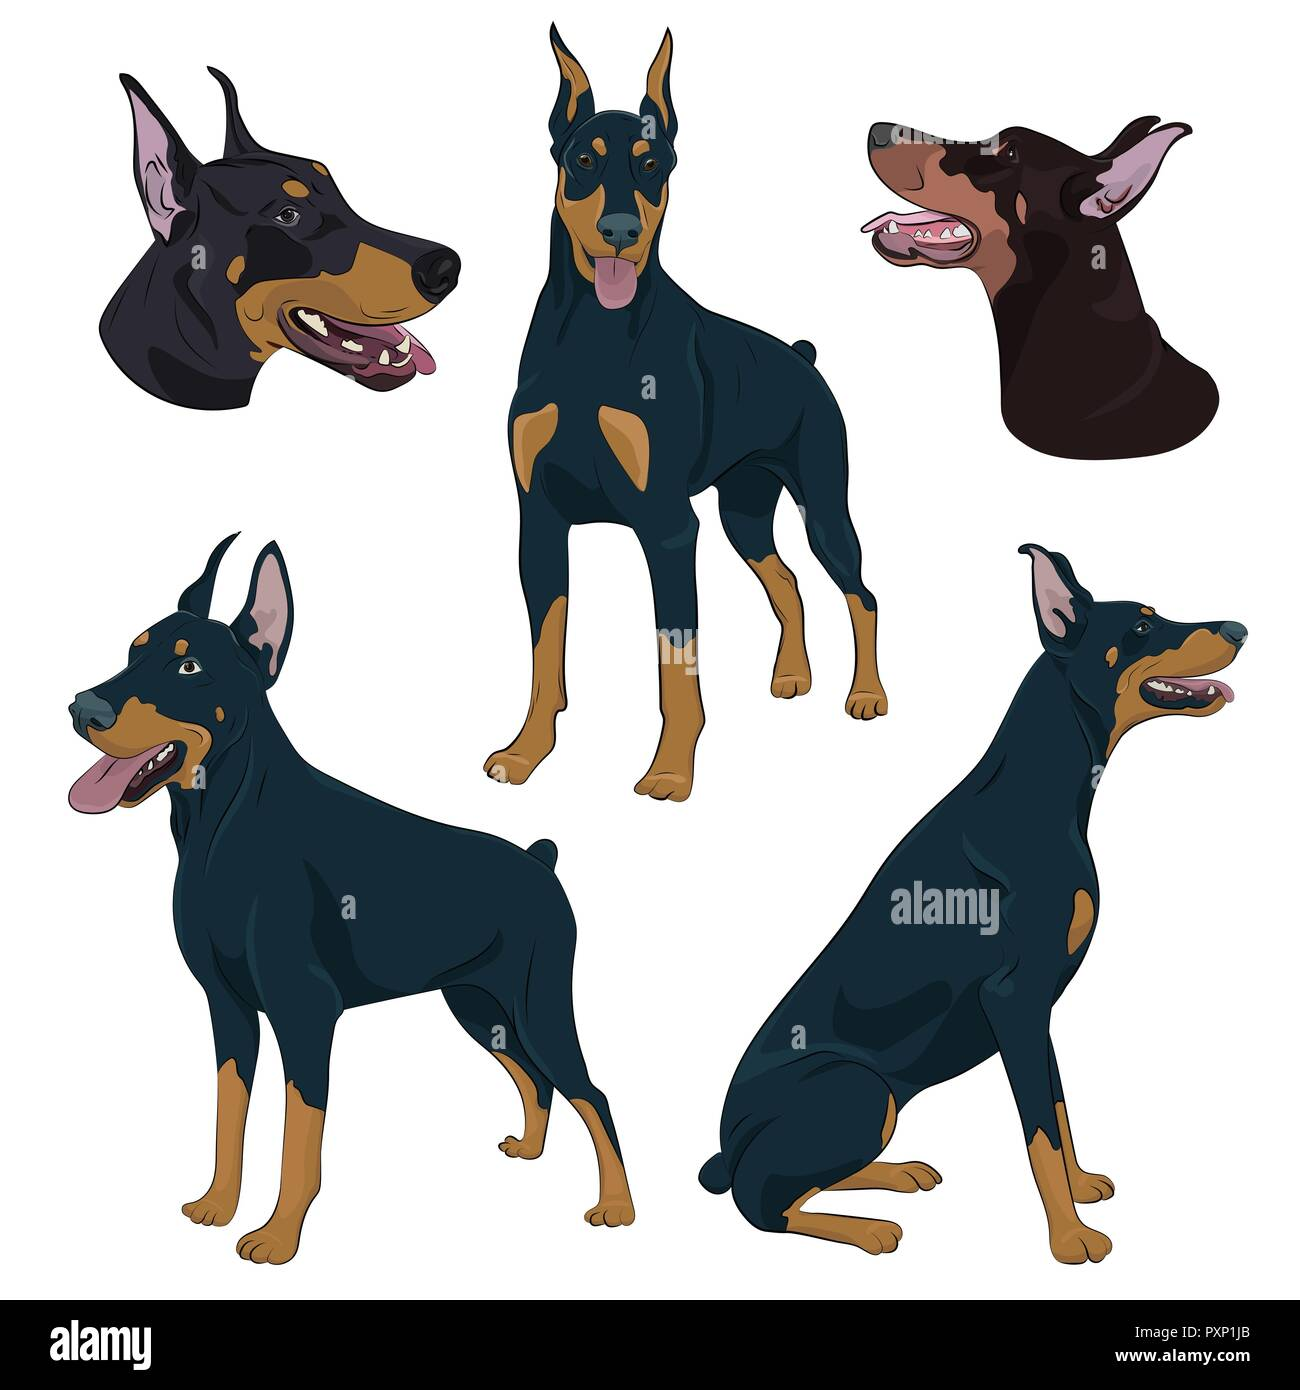 Dobermann in different poses. Watchdog hand drawn illustration. Doberman Pinscher set isolated on white background. - Stock Vector